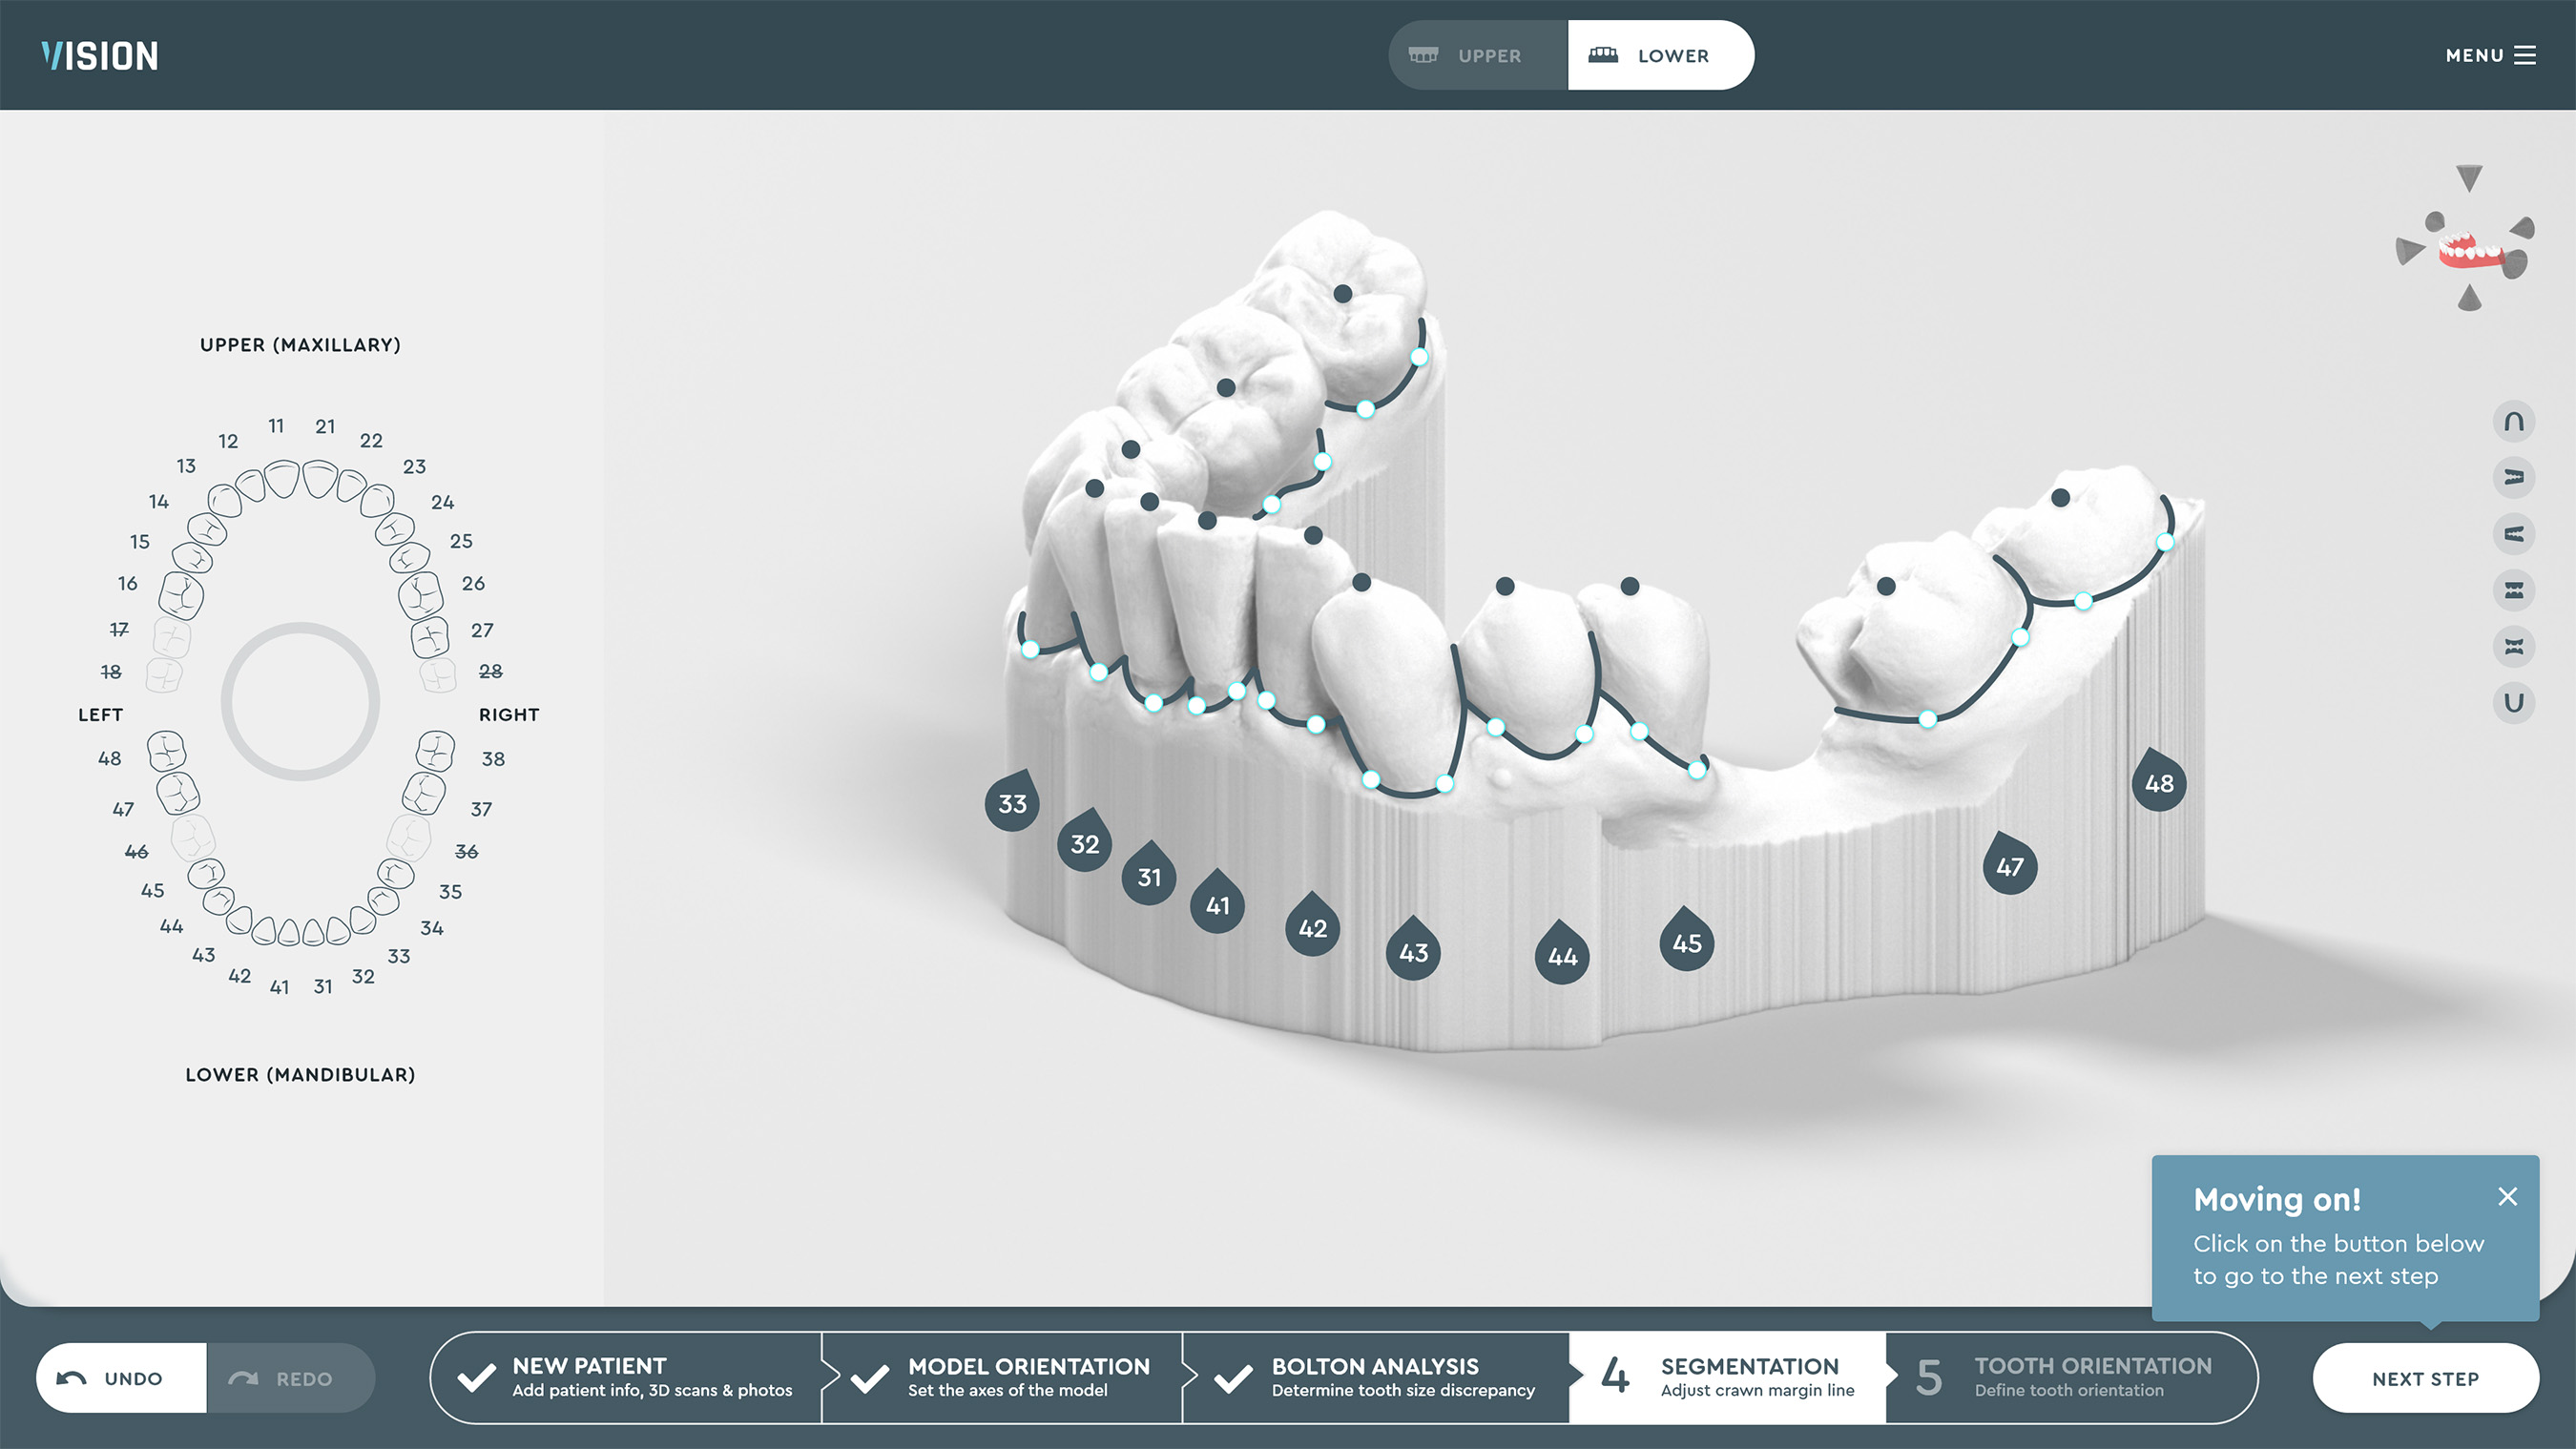 SoftSmile Software: Automated segmentation of teeth and gums